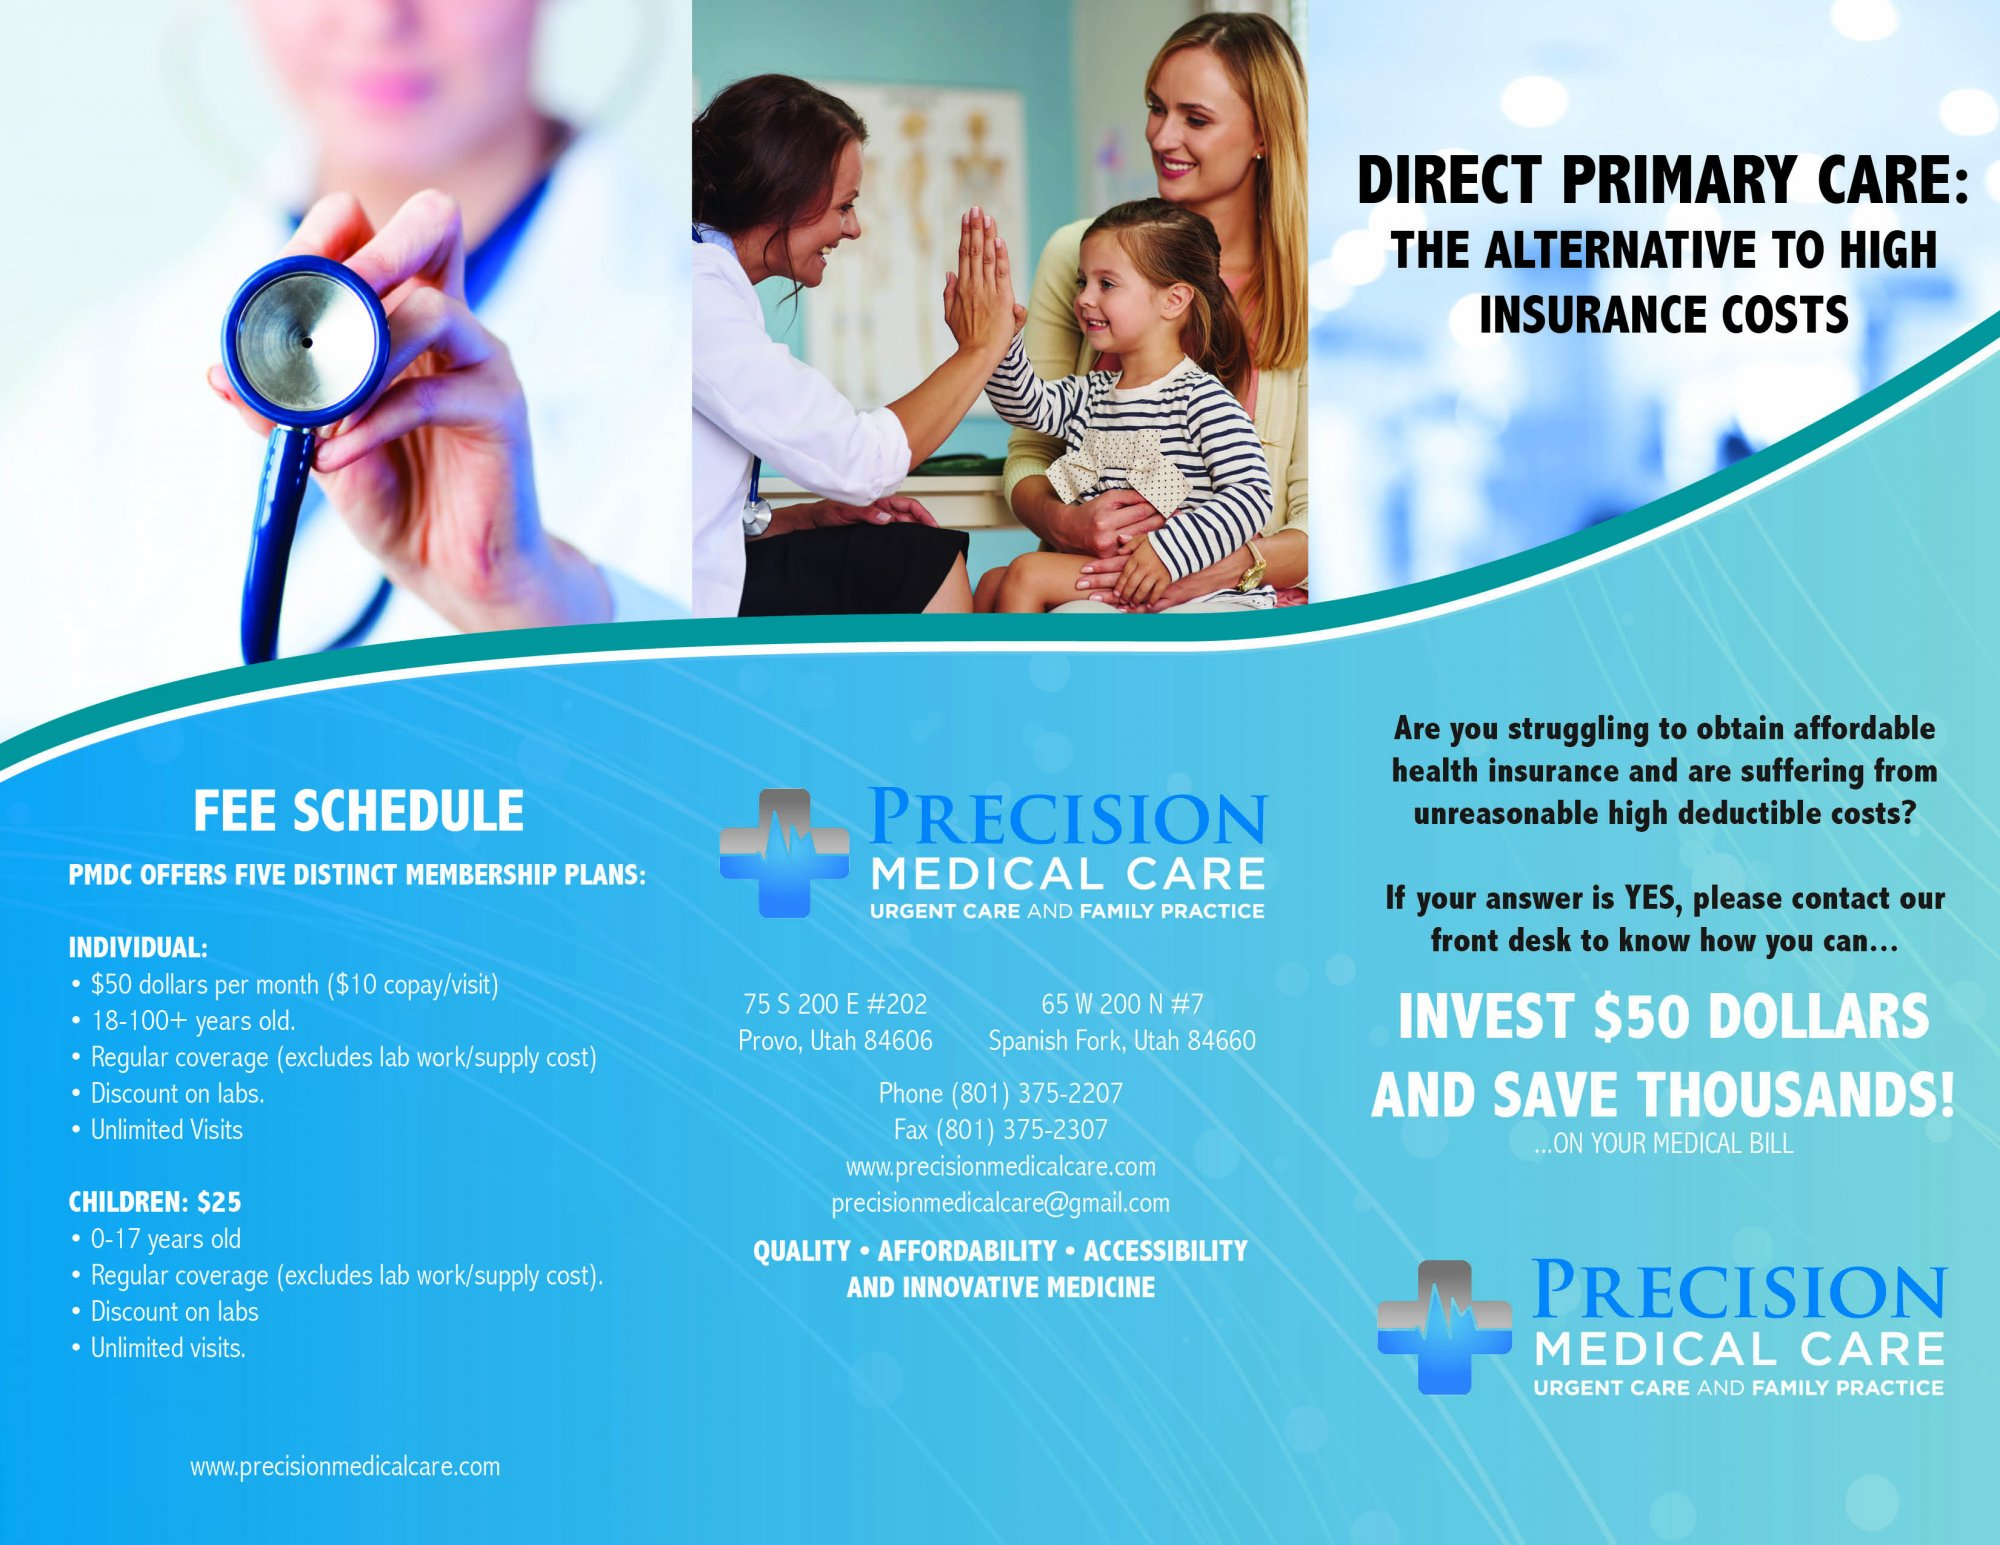 Direct Primary Care at Precision Medical Care